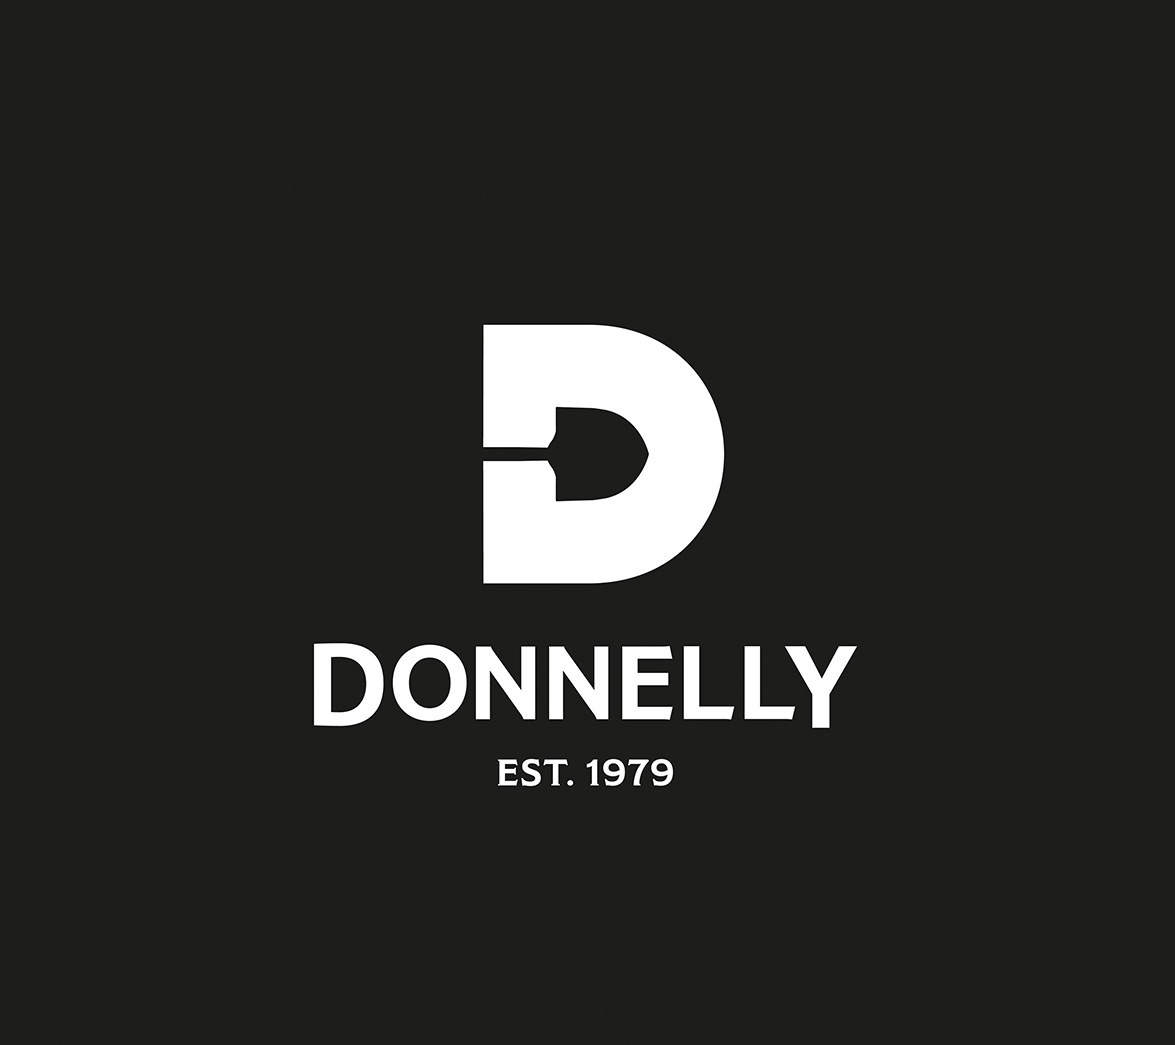 Logo design for food brand Donnelly, designed by White Bear Studio